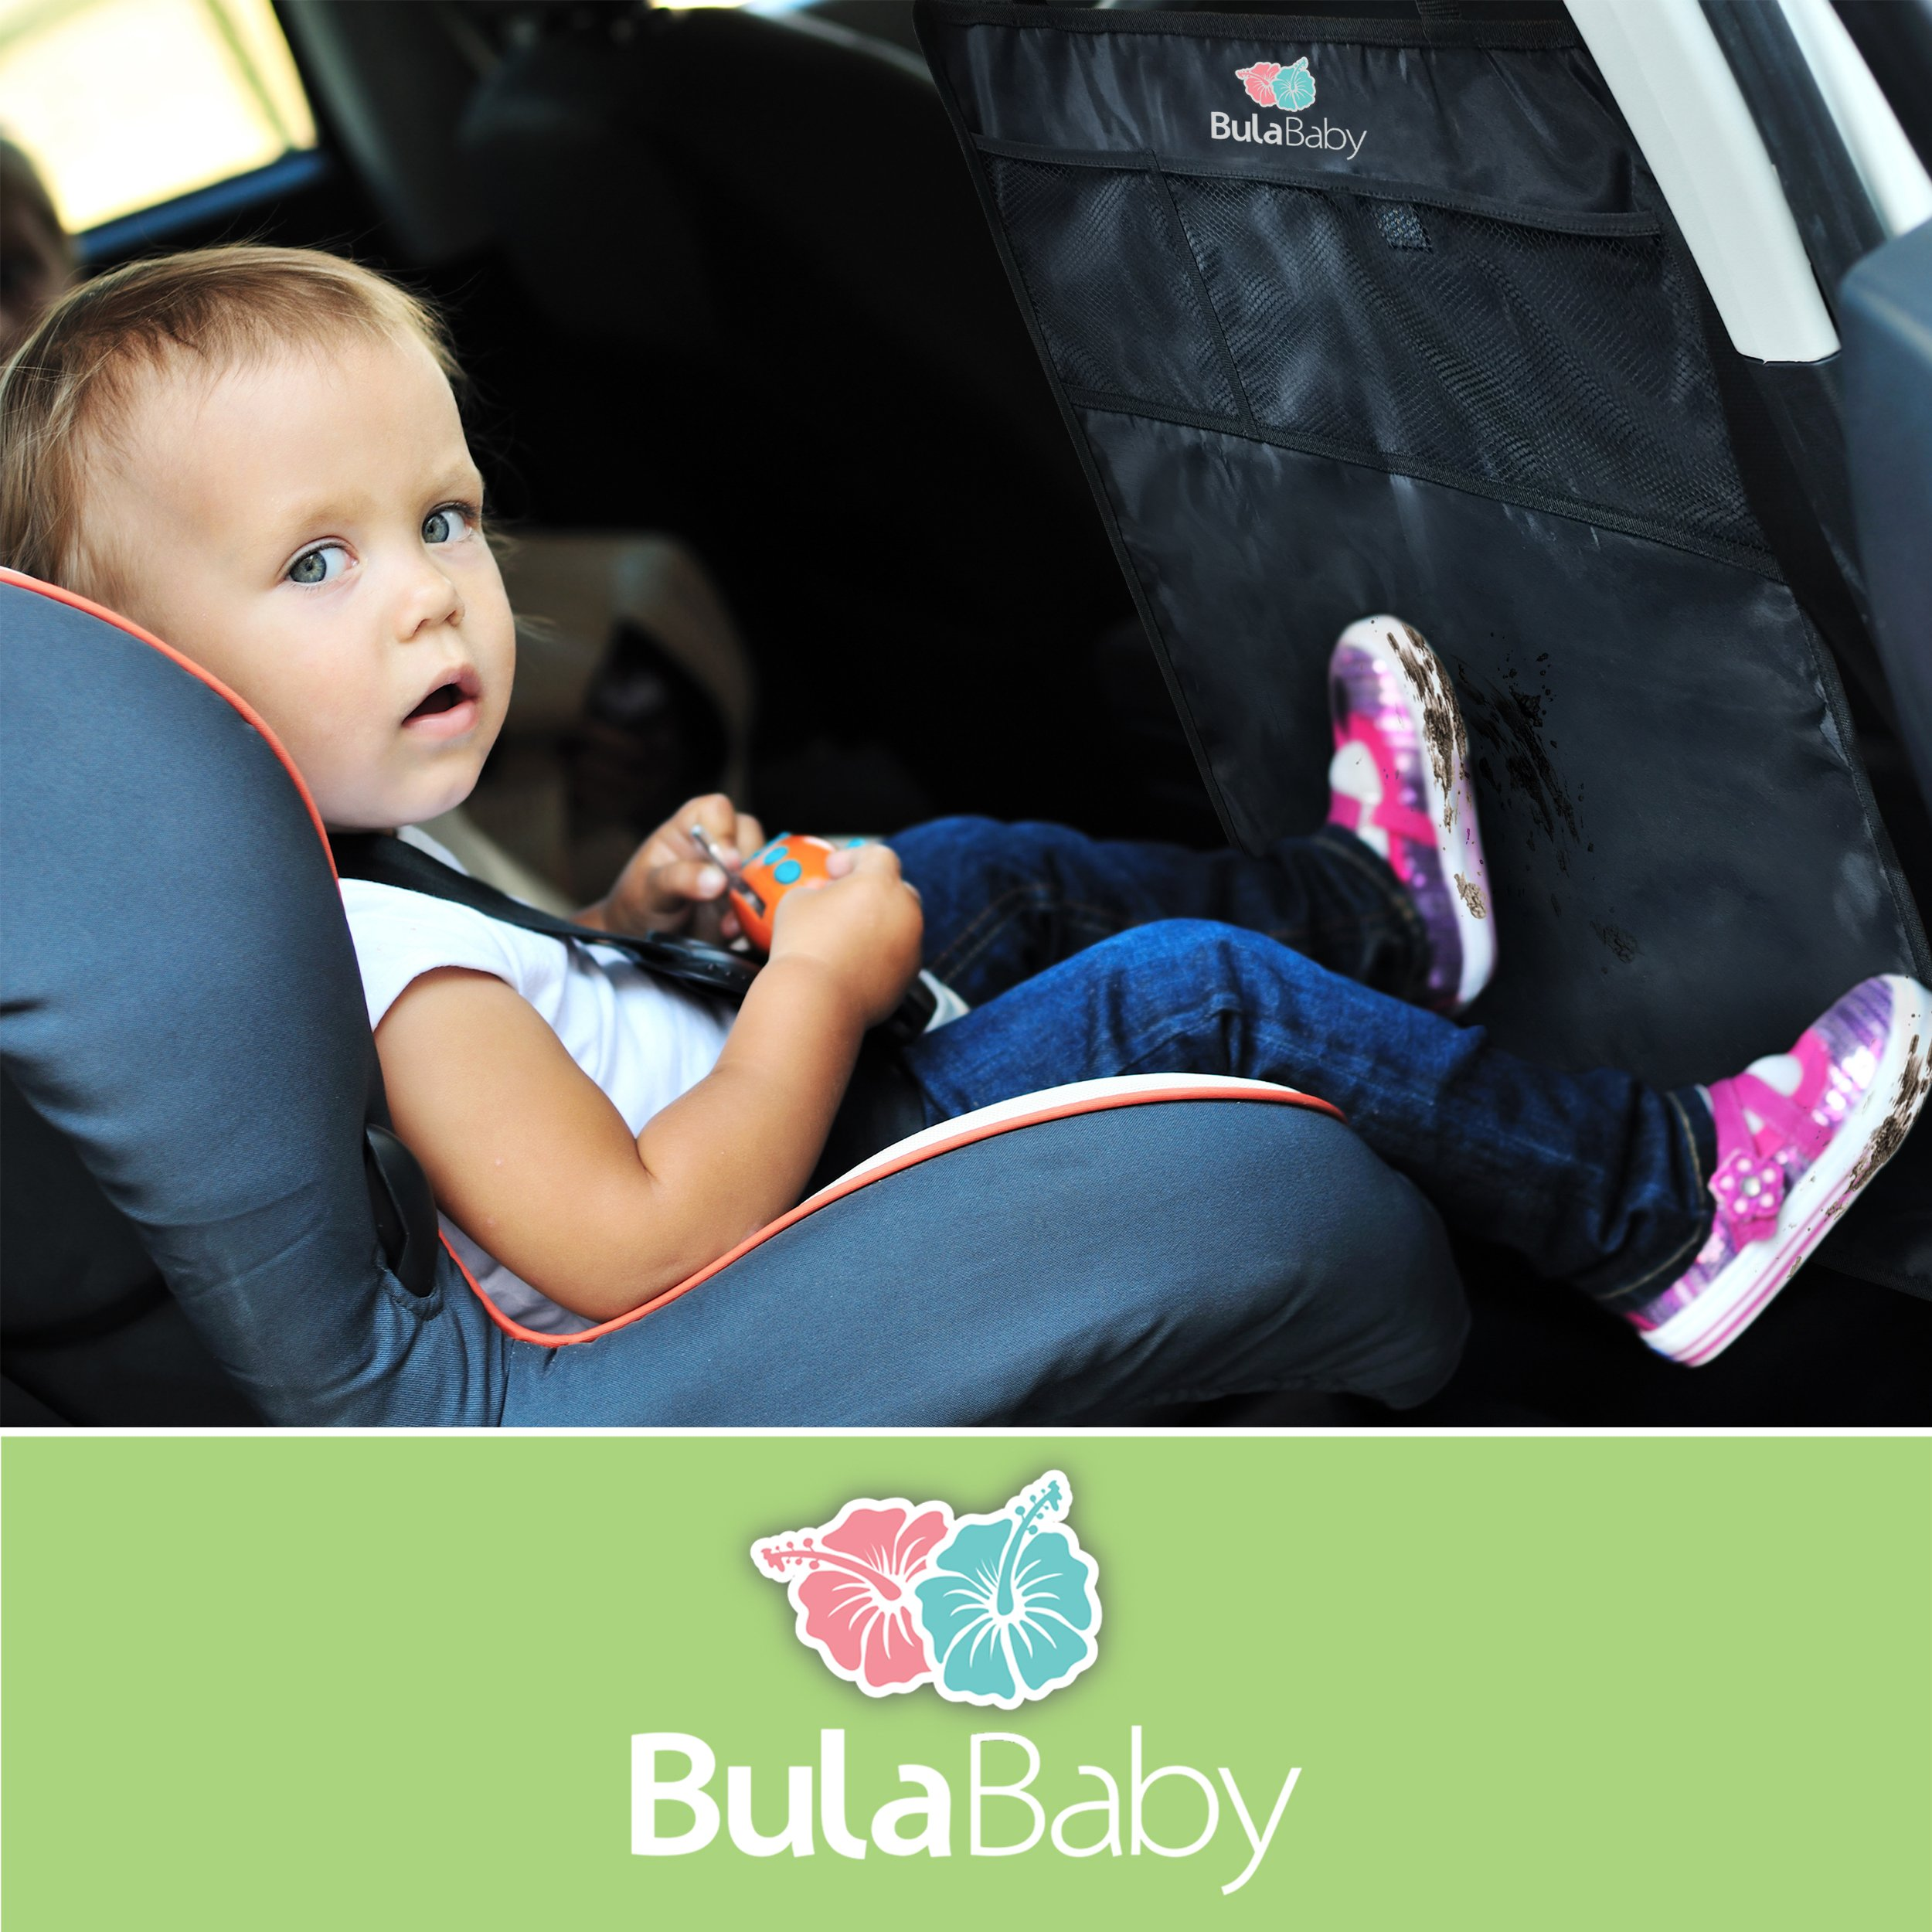 Bula Baby - Back of Seat Protector - 2 Count - Complete With Pocket Organizer by Bula Baby (Image #2)